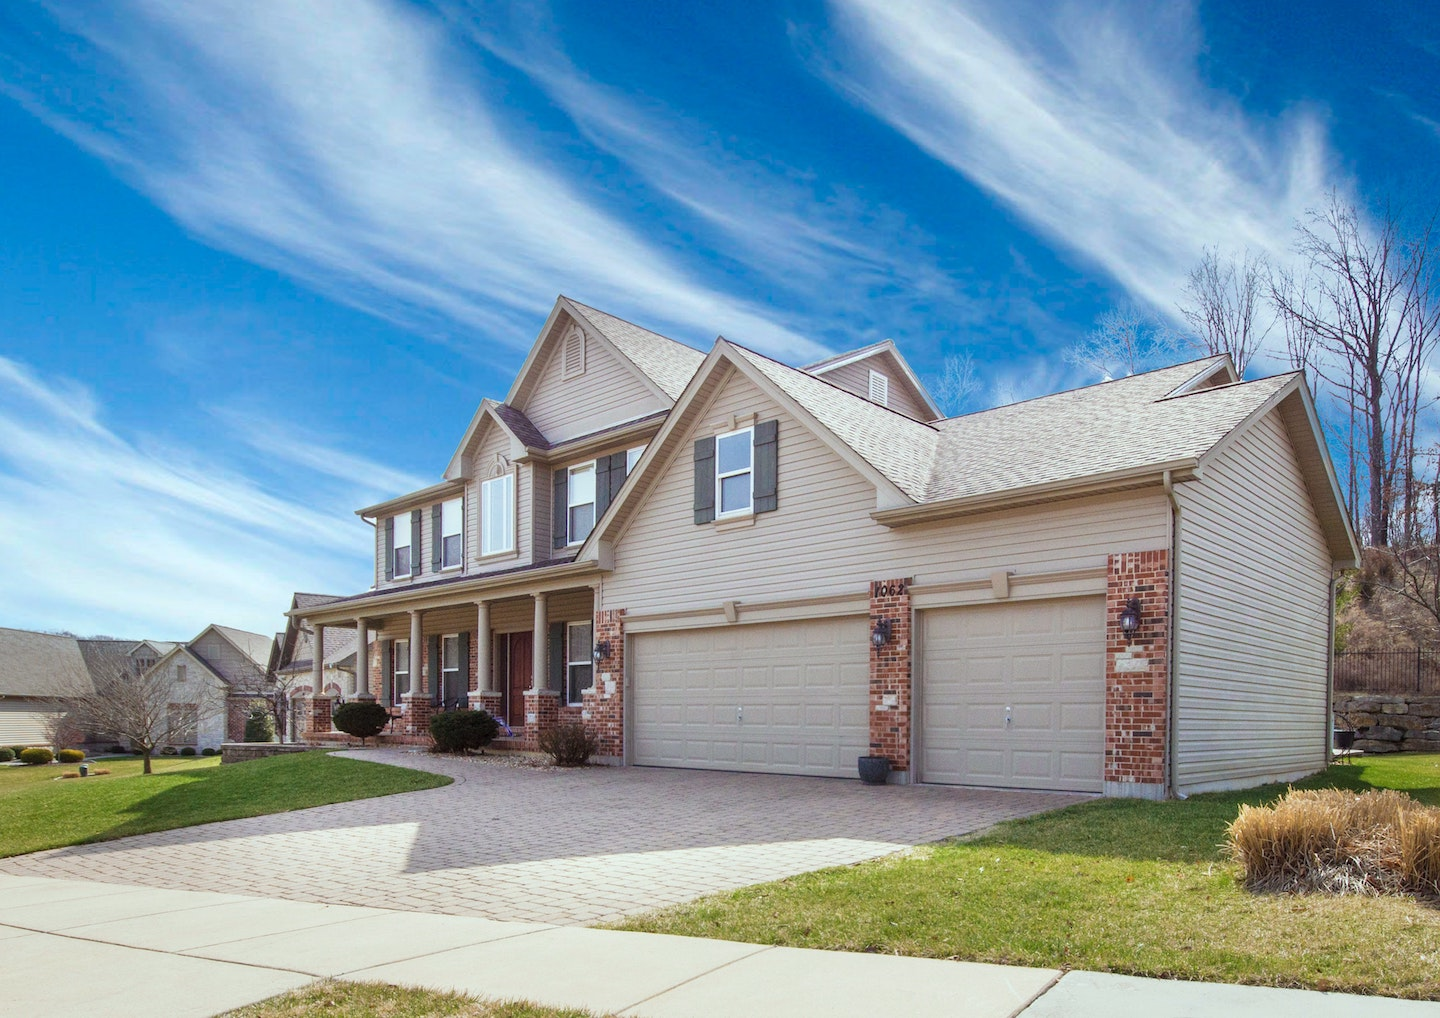 dream-realty-real-estate-realtor-home-buying-process-milwaukee-wisconsin